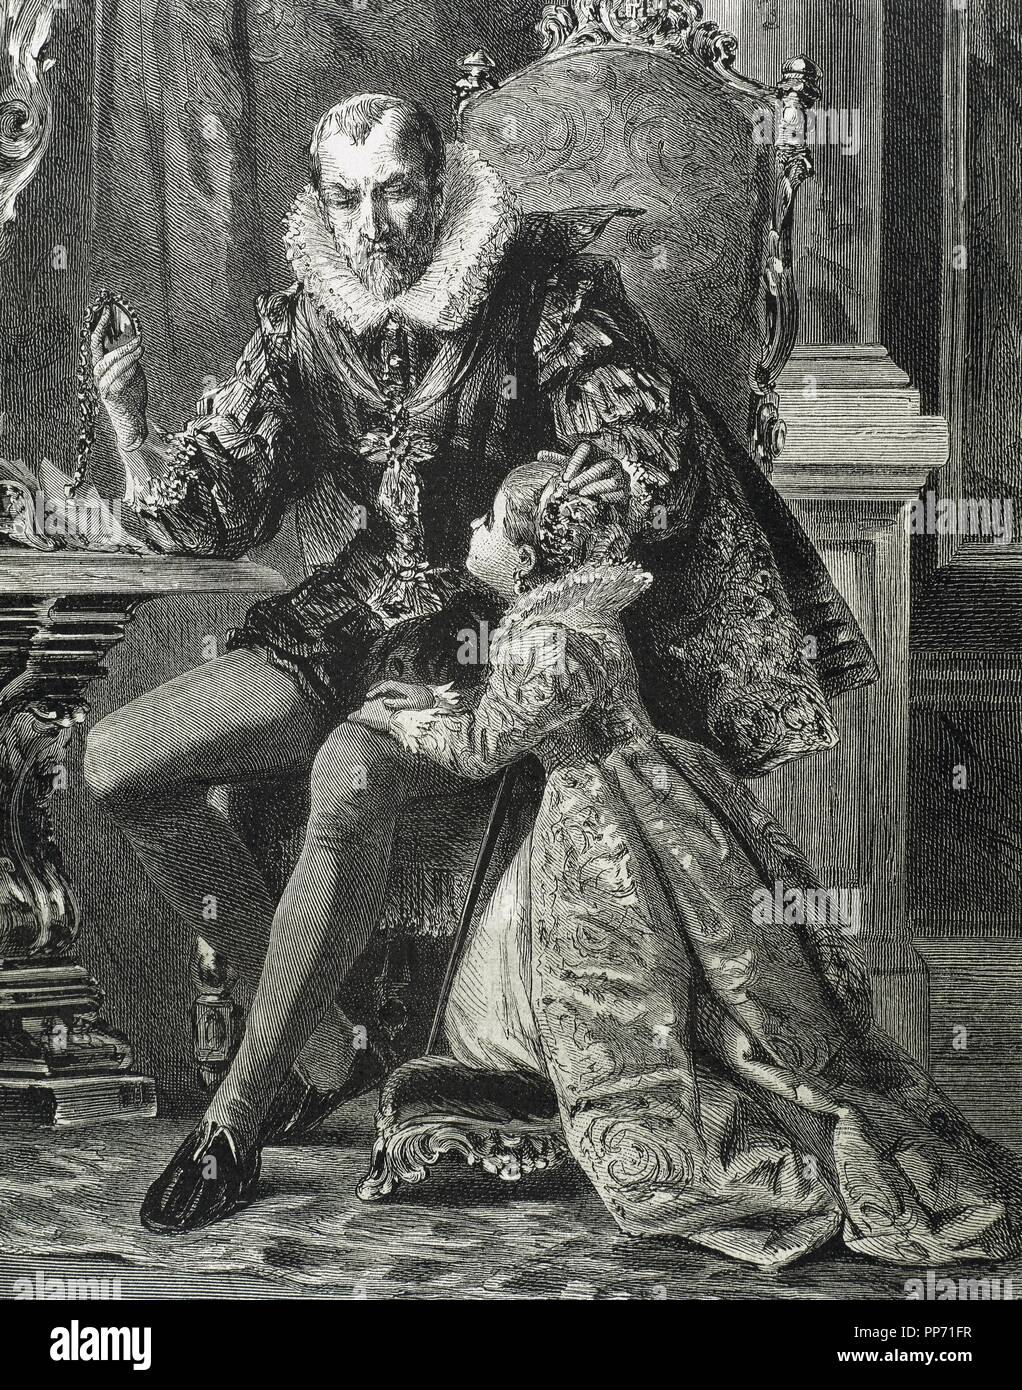 Philip II of Spain (1527-1598). House of Habsburg. King with his son. Engraving. 19th century. - Stock Image